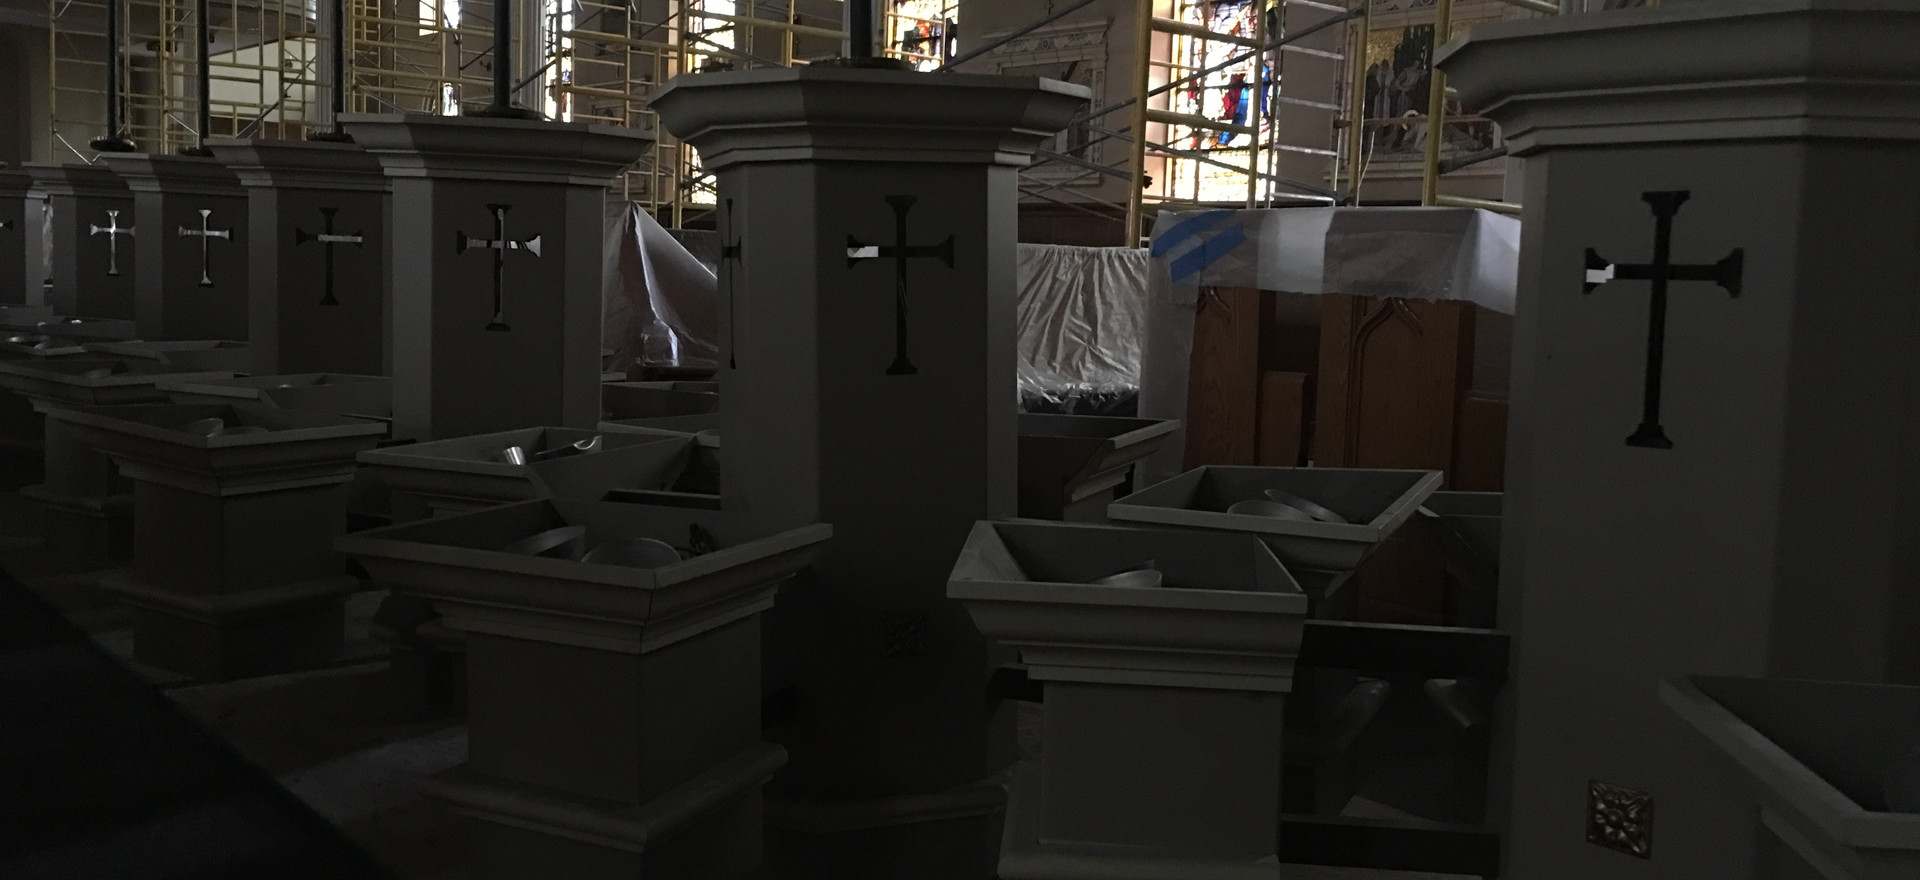 The pendant lights awaiting removal from the church.